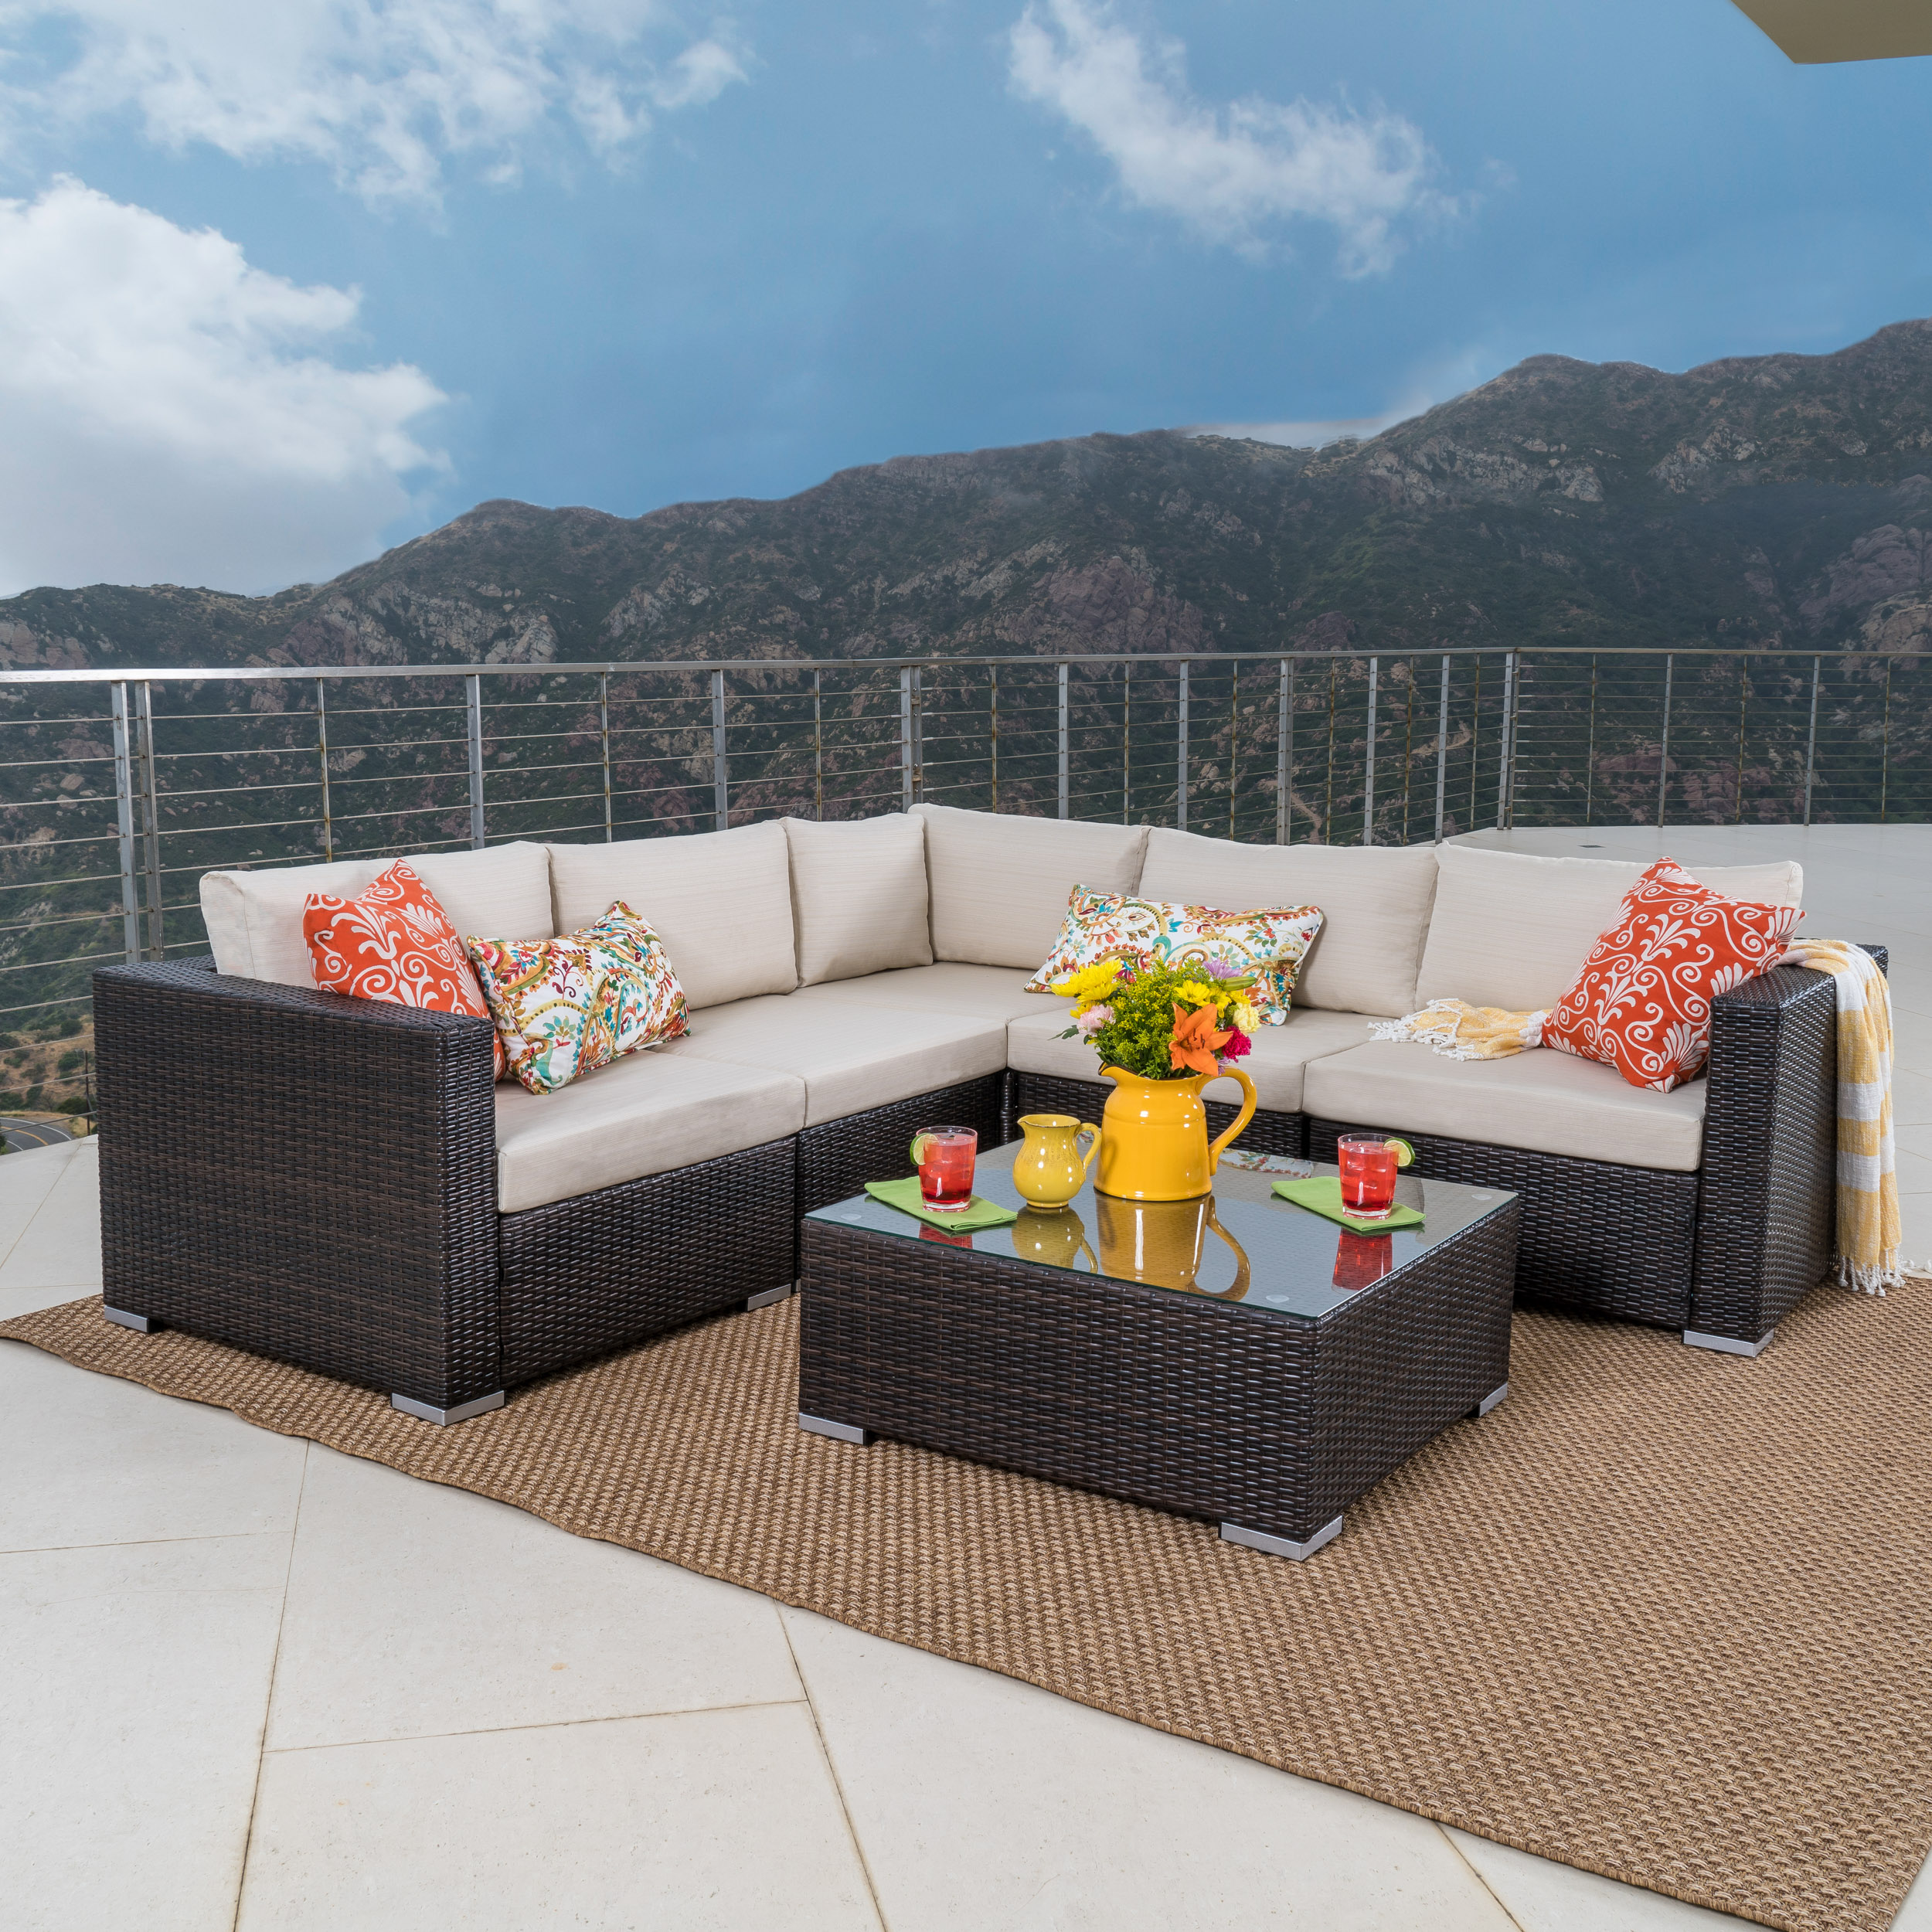 Faviola 5 Seater Outdoor Wicker Sectional Sofa Set With Aluminum Frame And  Cushions, Multibrown,